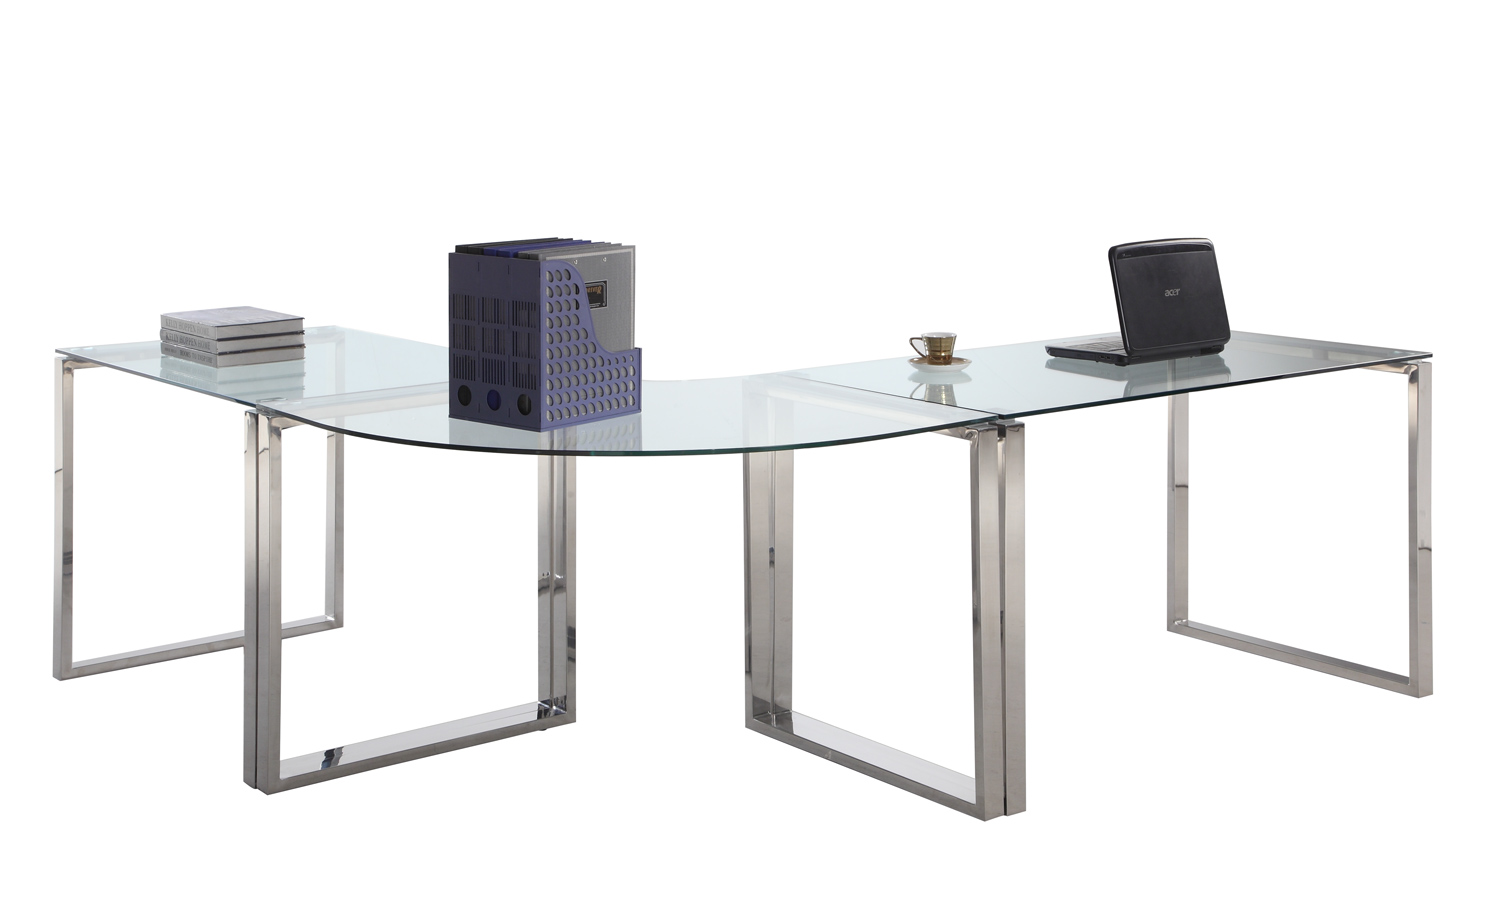 Chintaly Imports 6931 Computer Desk Table   Clear Glass/Stainless Steel